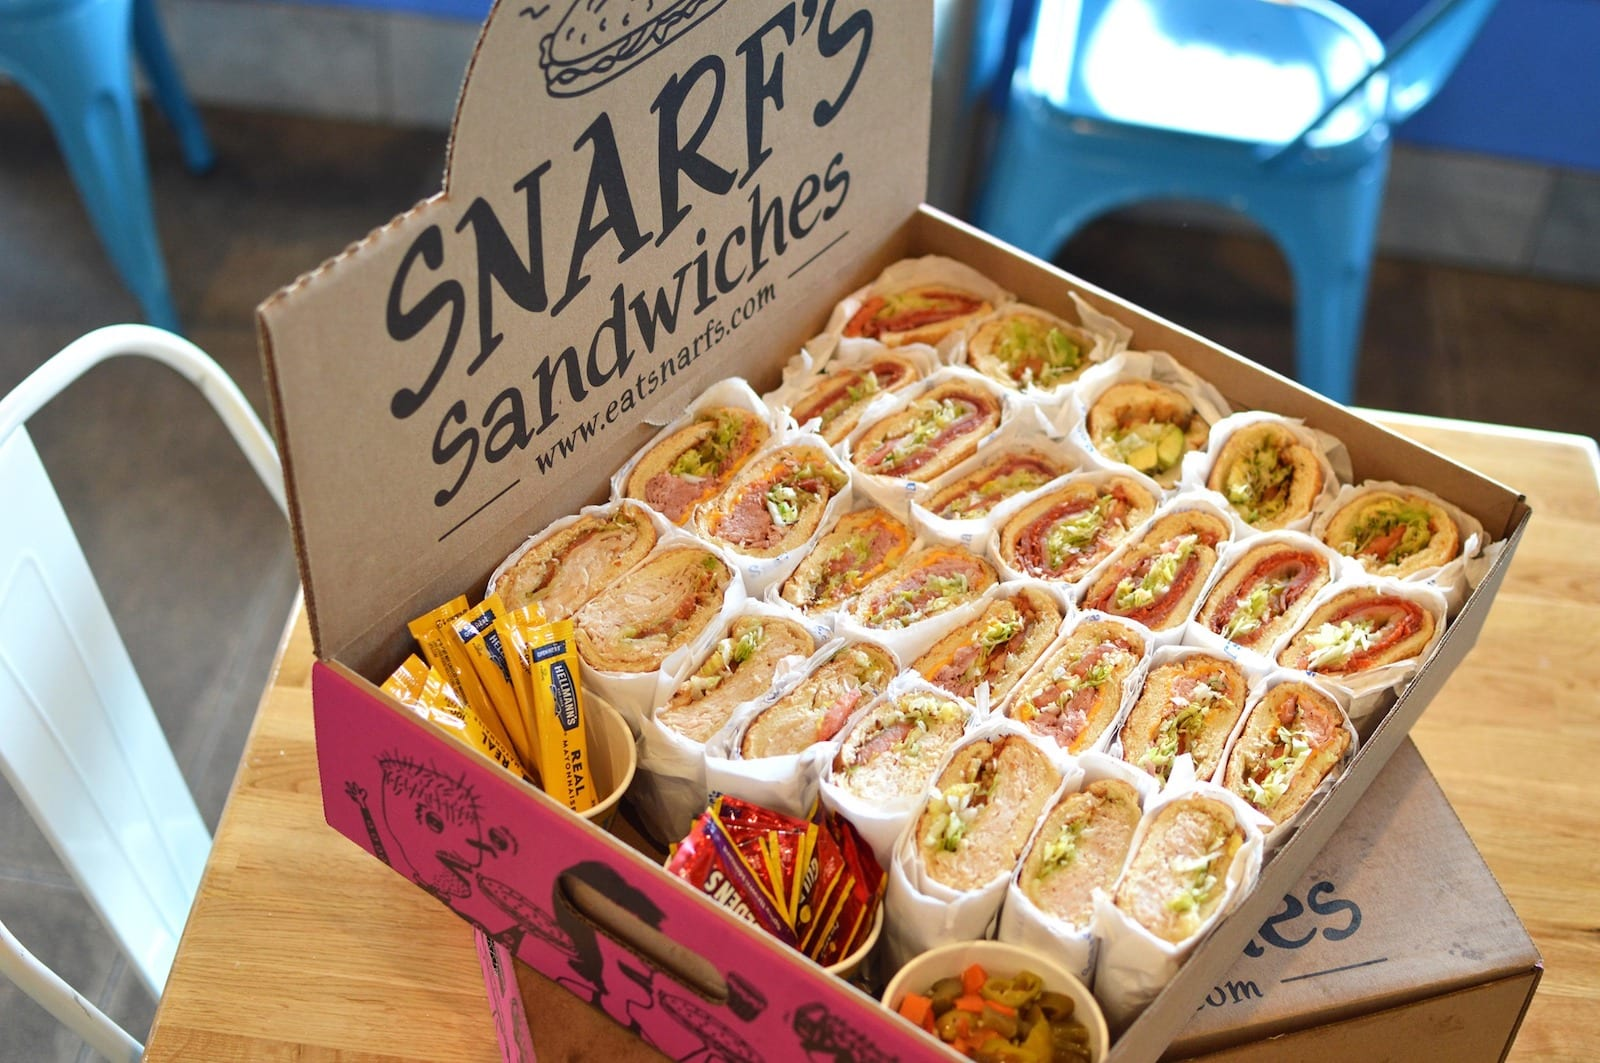 Snarfs Sandwiches Catering Colorado